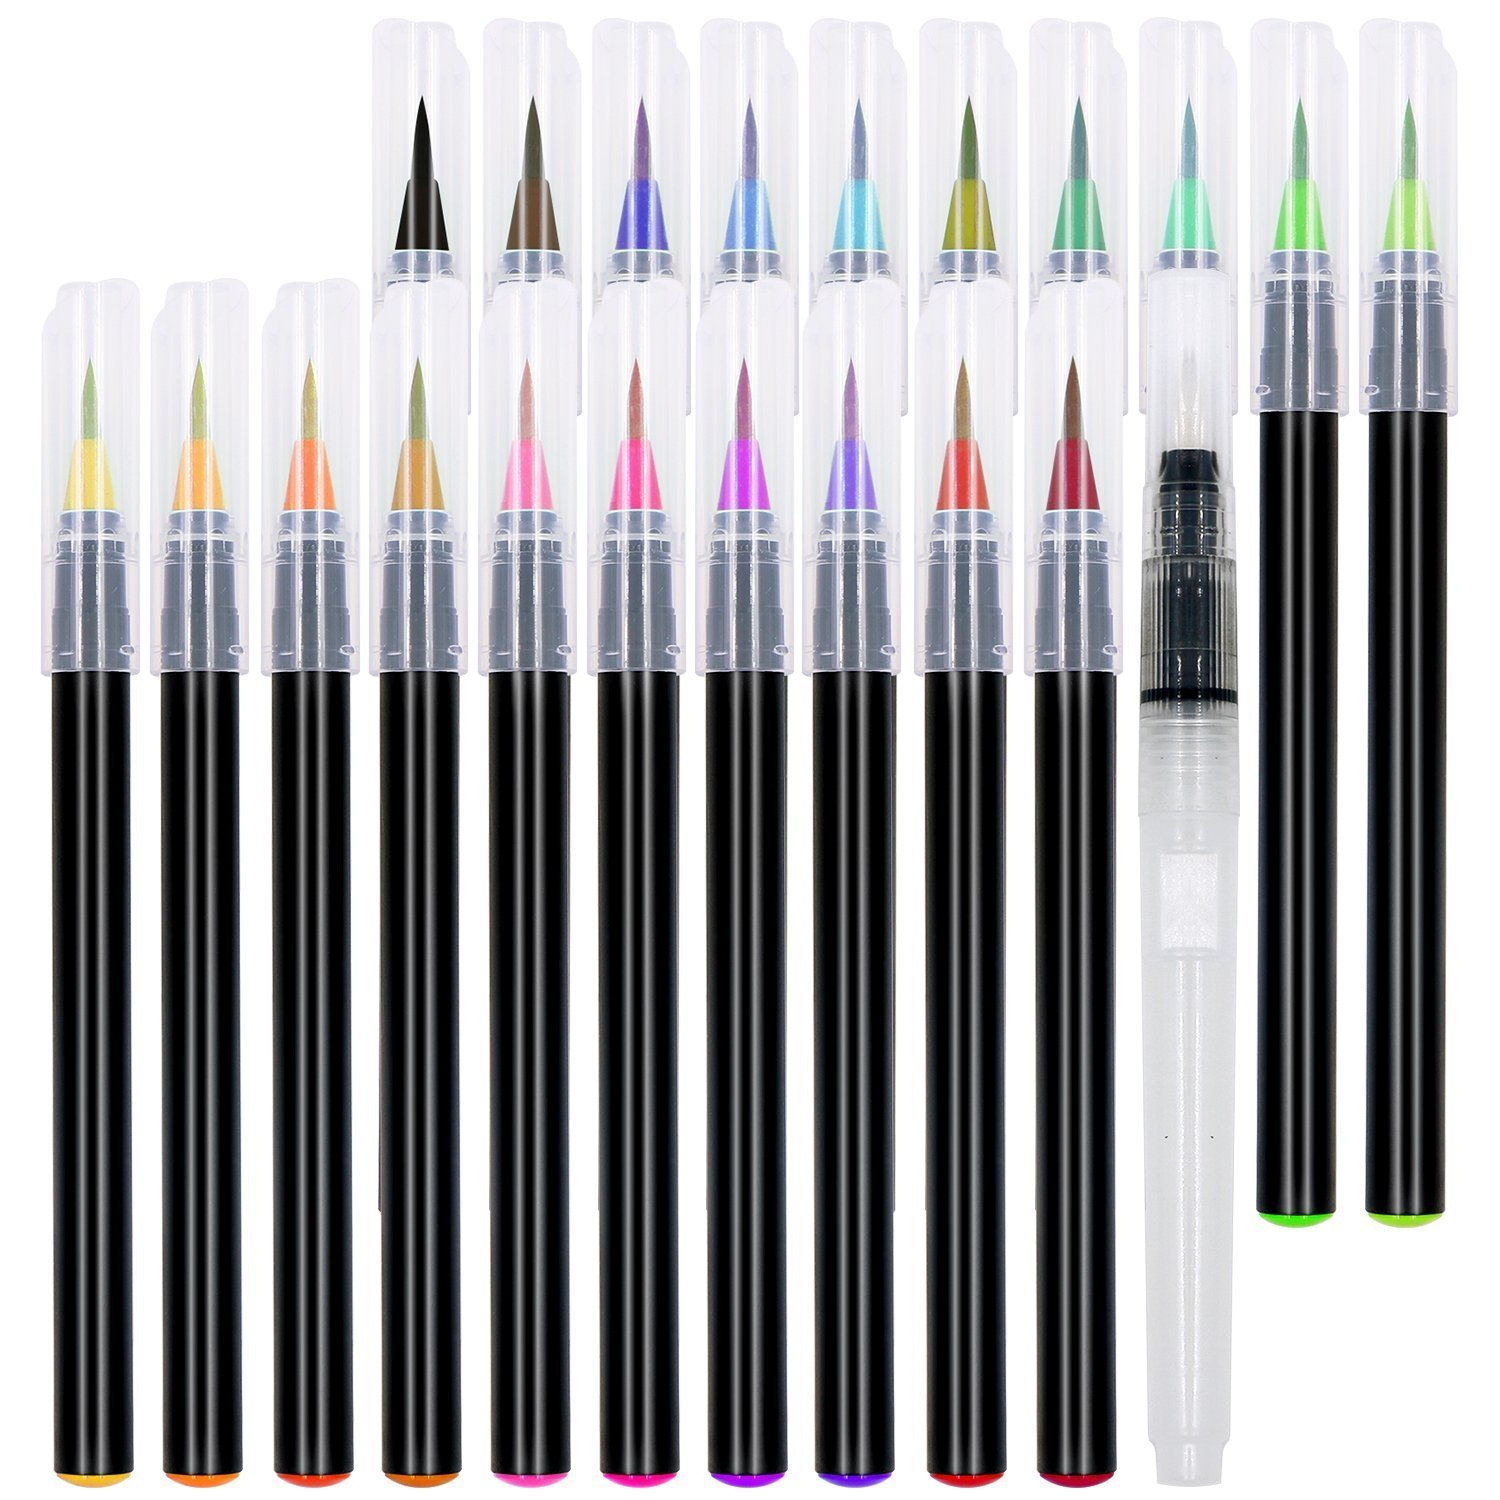 21 Watercolor Brush Pens - Soft Watercolor Markers with Flexible Brush Tips - Multiple Colors - Set of 21 Artademy